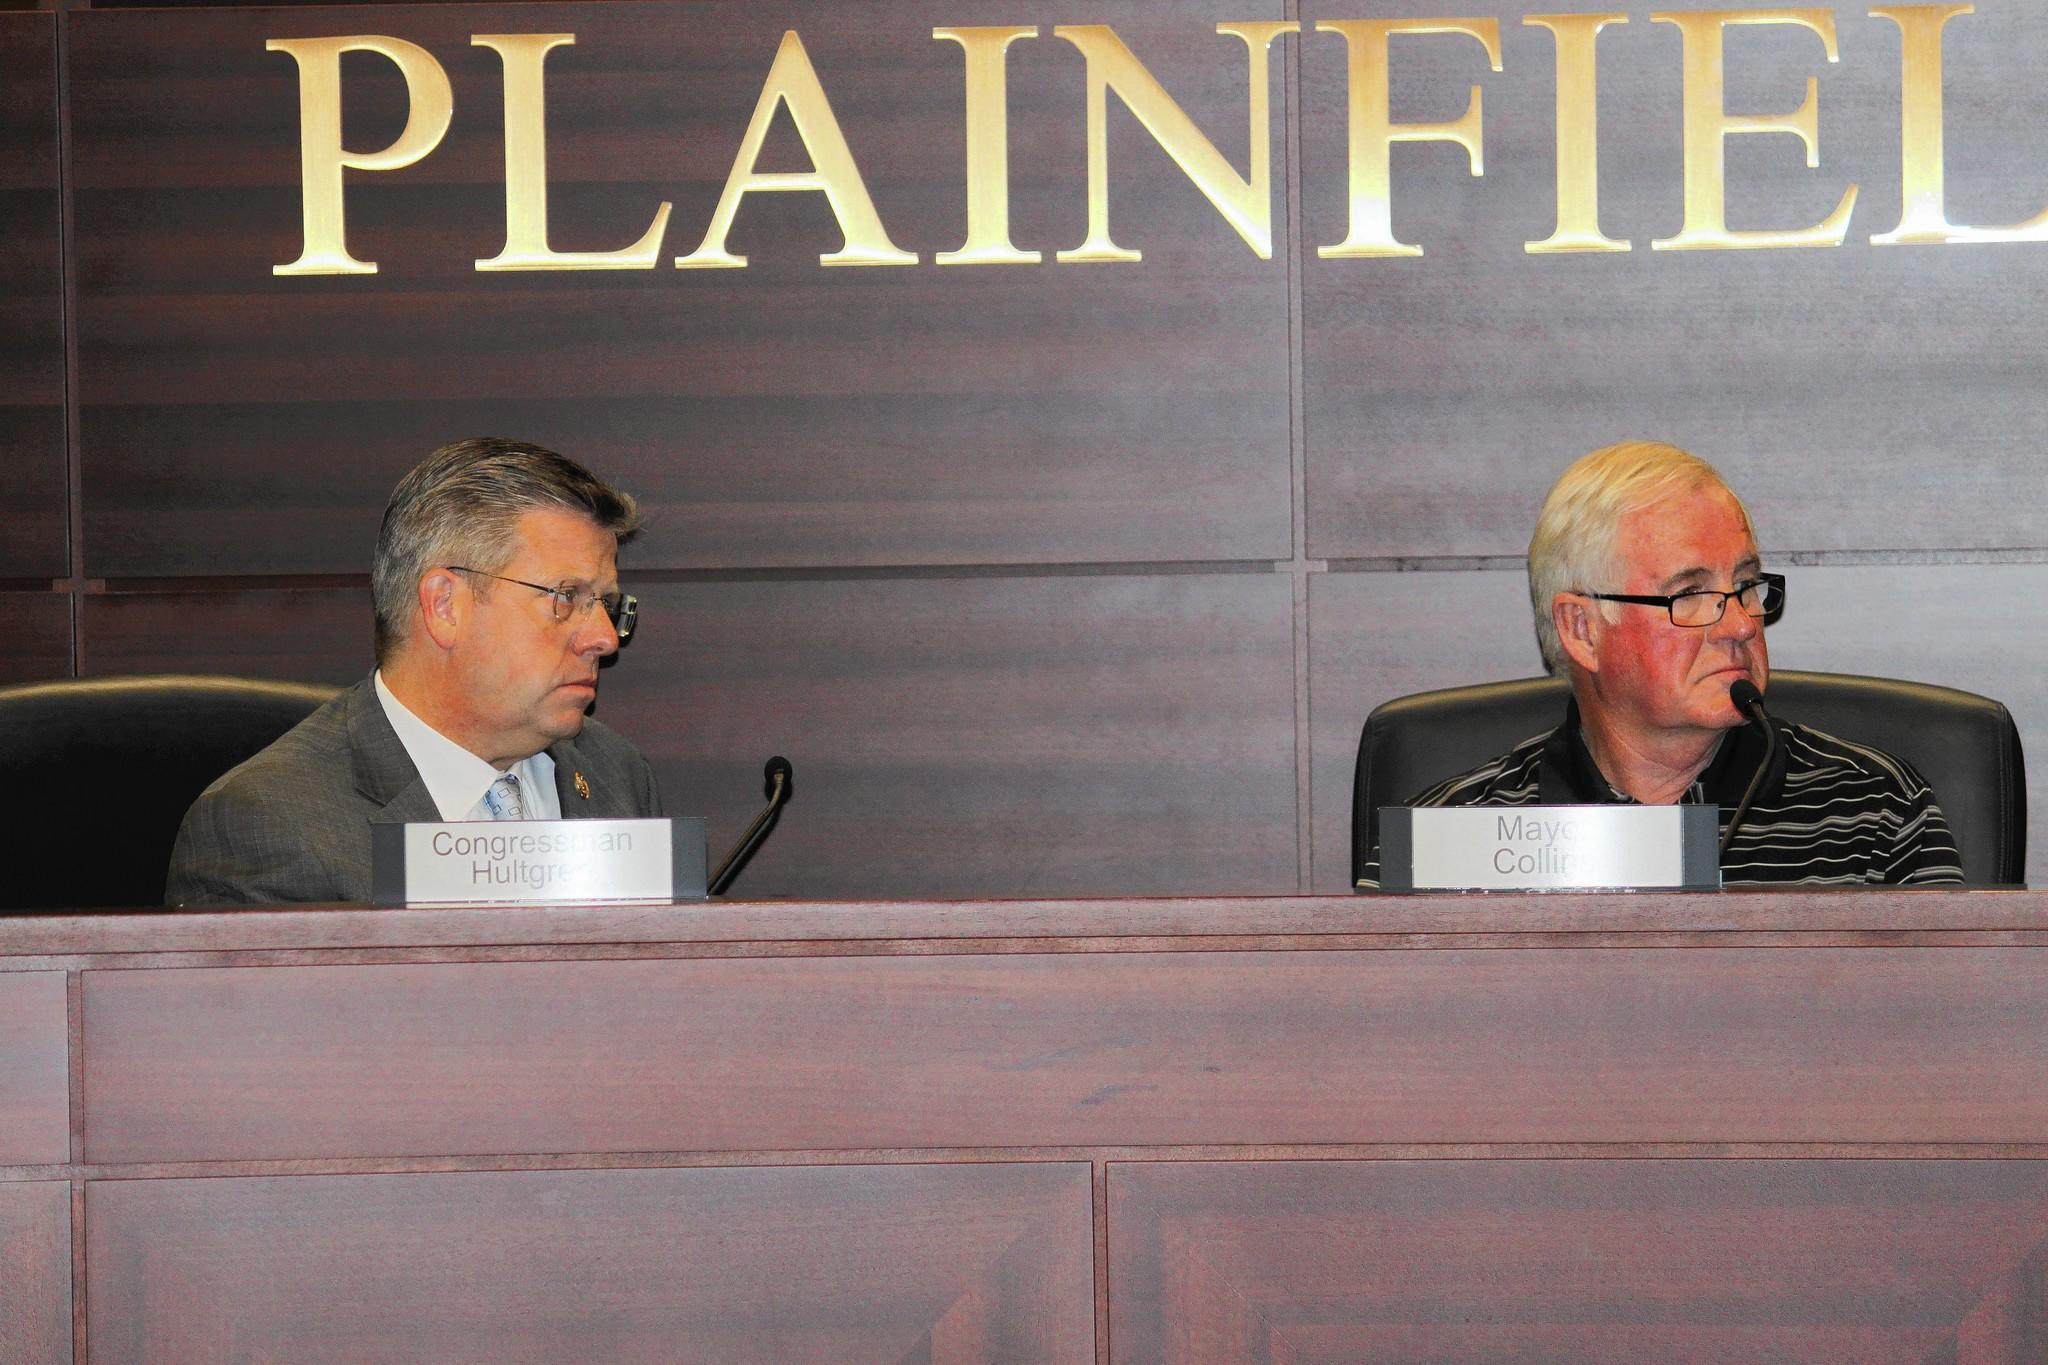 U.S. Rep. Randy Hultgren, left, met with Plainfield officials on May 16 to discuss train traffic through town.